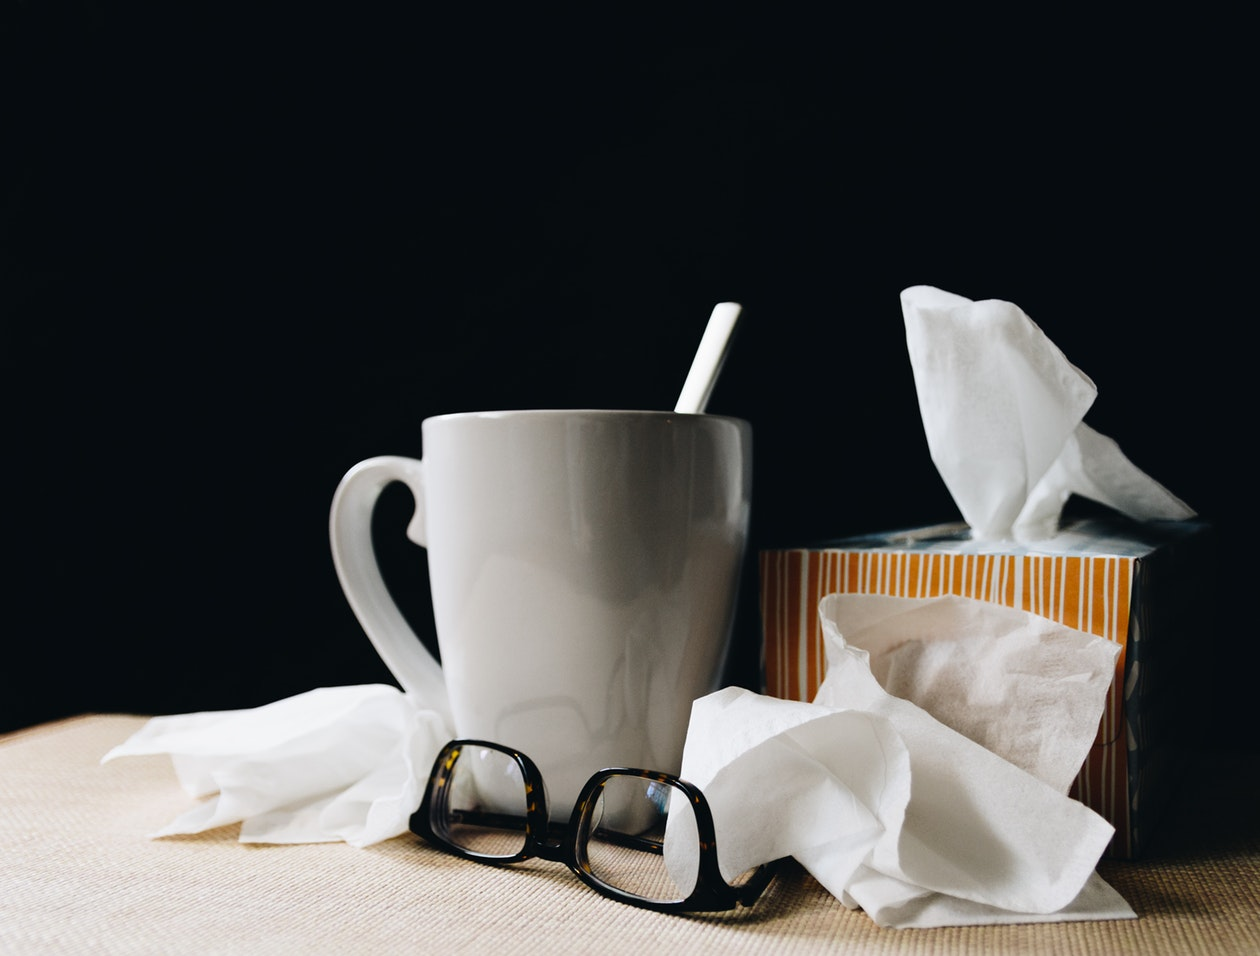 A cup of tea, tissues, and a pair of glasses. Having medical care is important for staying healthy while staying in assisted living.